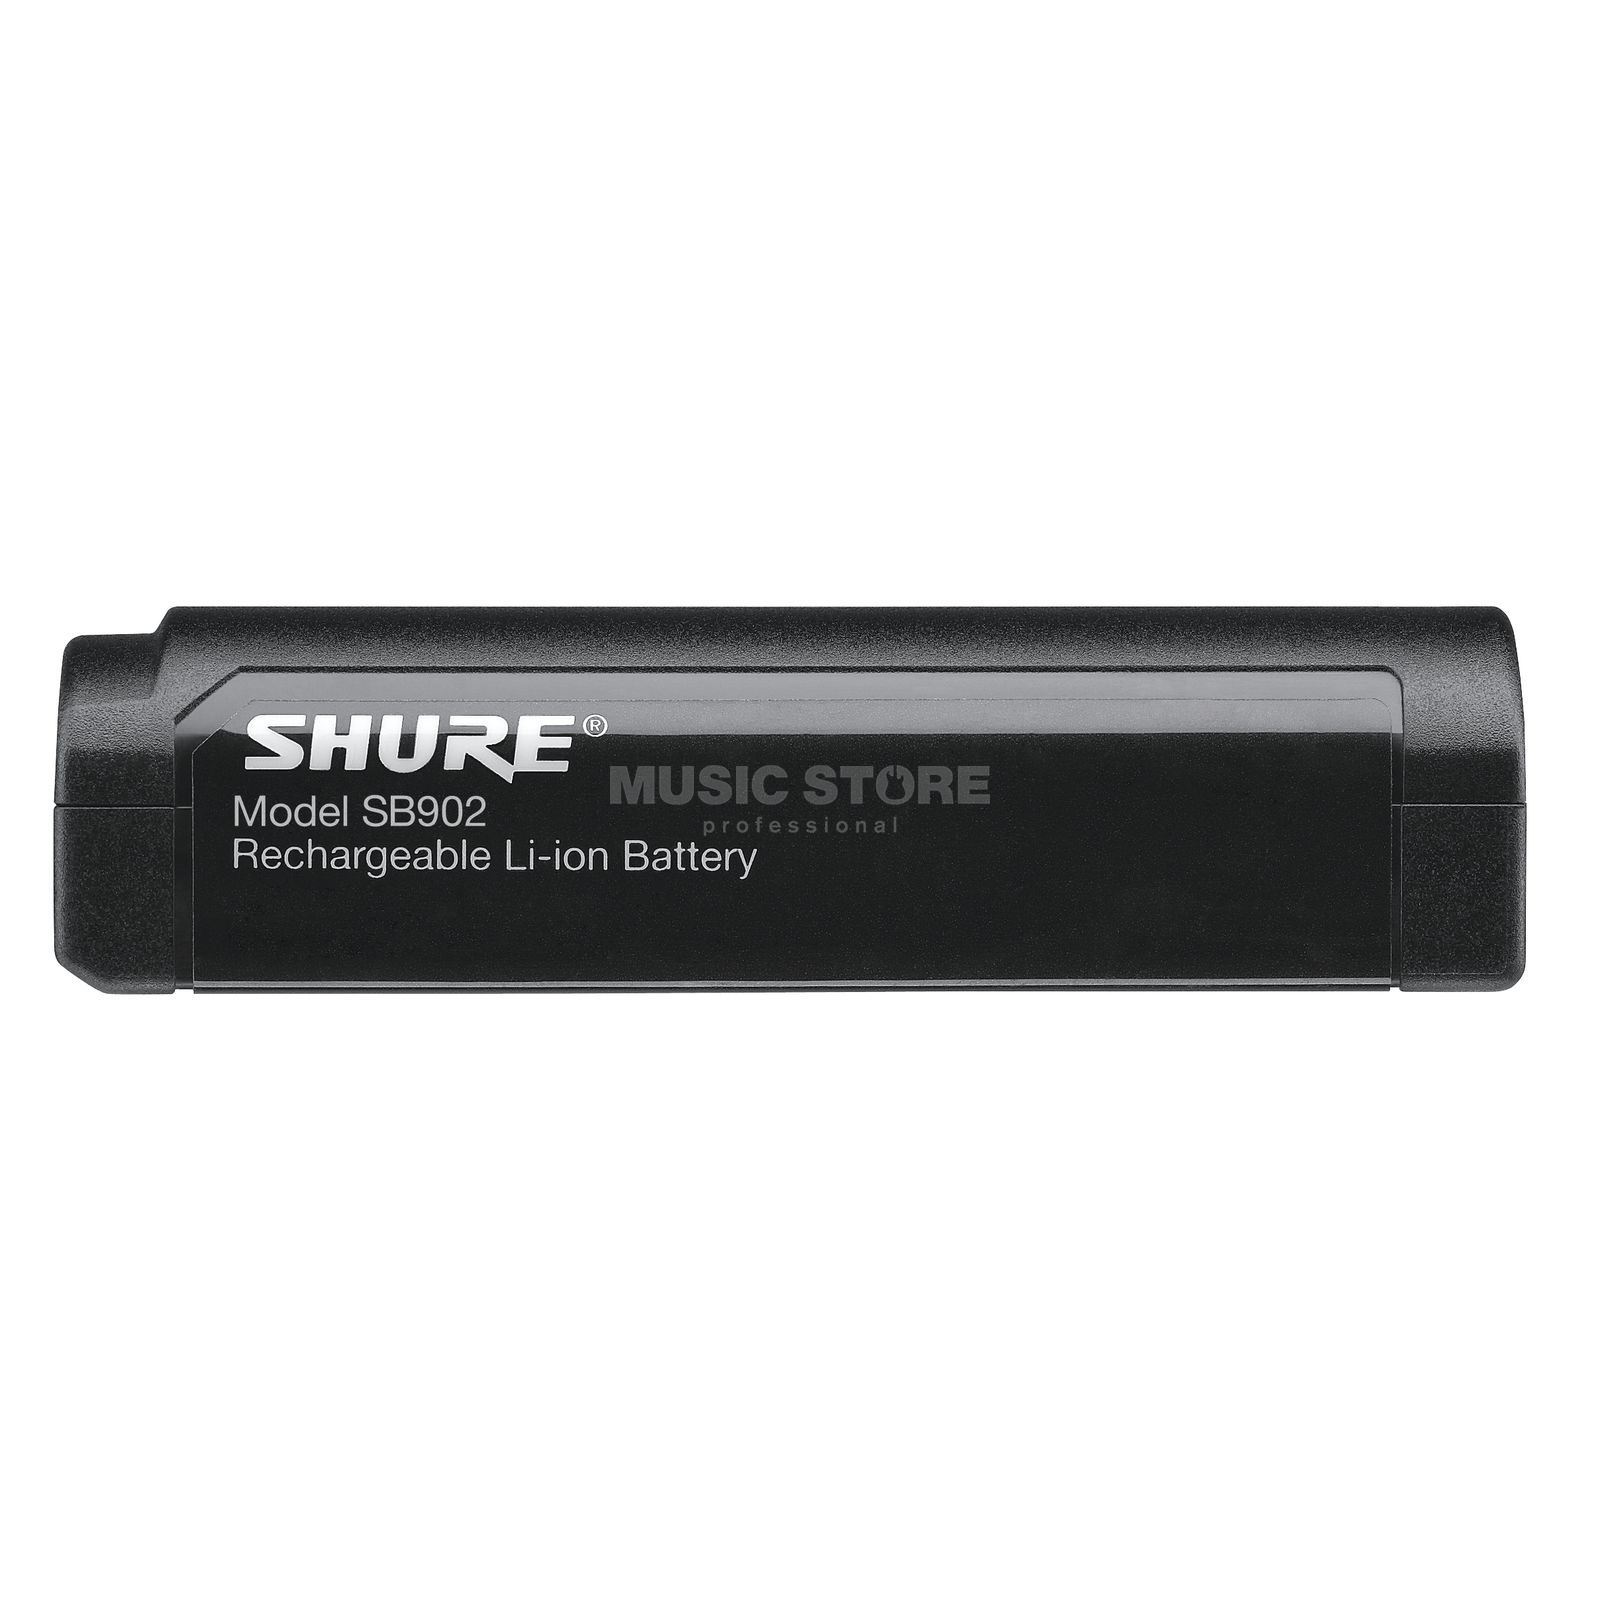 Shure SB902 Rechargeable Battery Produktbillede